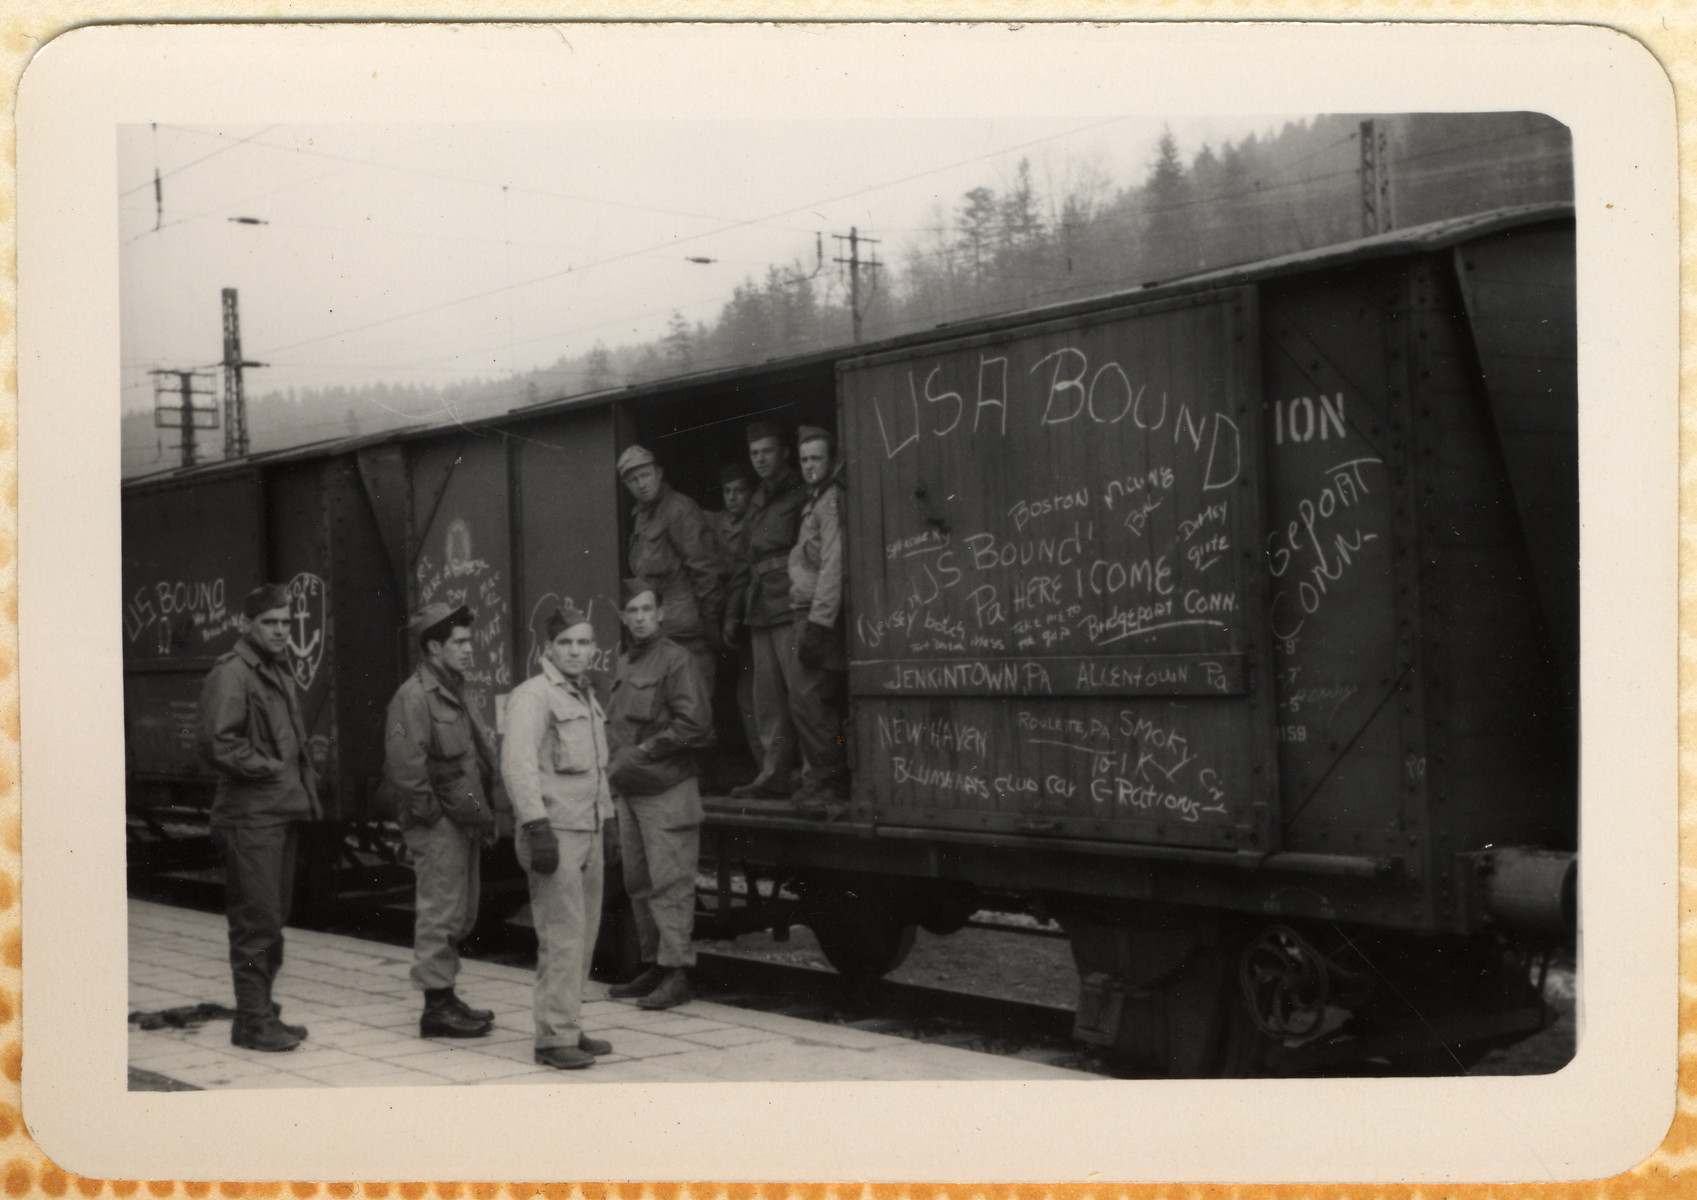 """American GIs prepare to return home.  They are standing by a train with the words """"USA Bound"""" written on its side."""